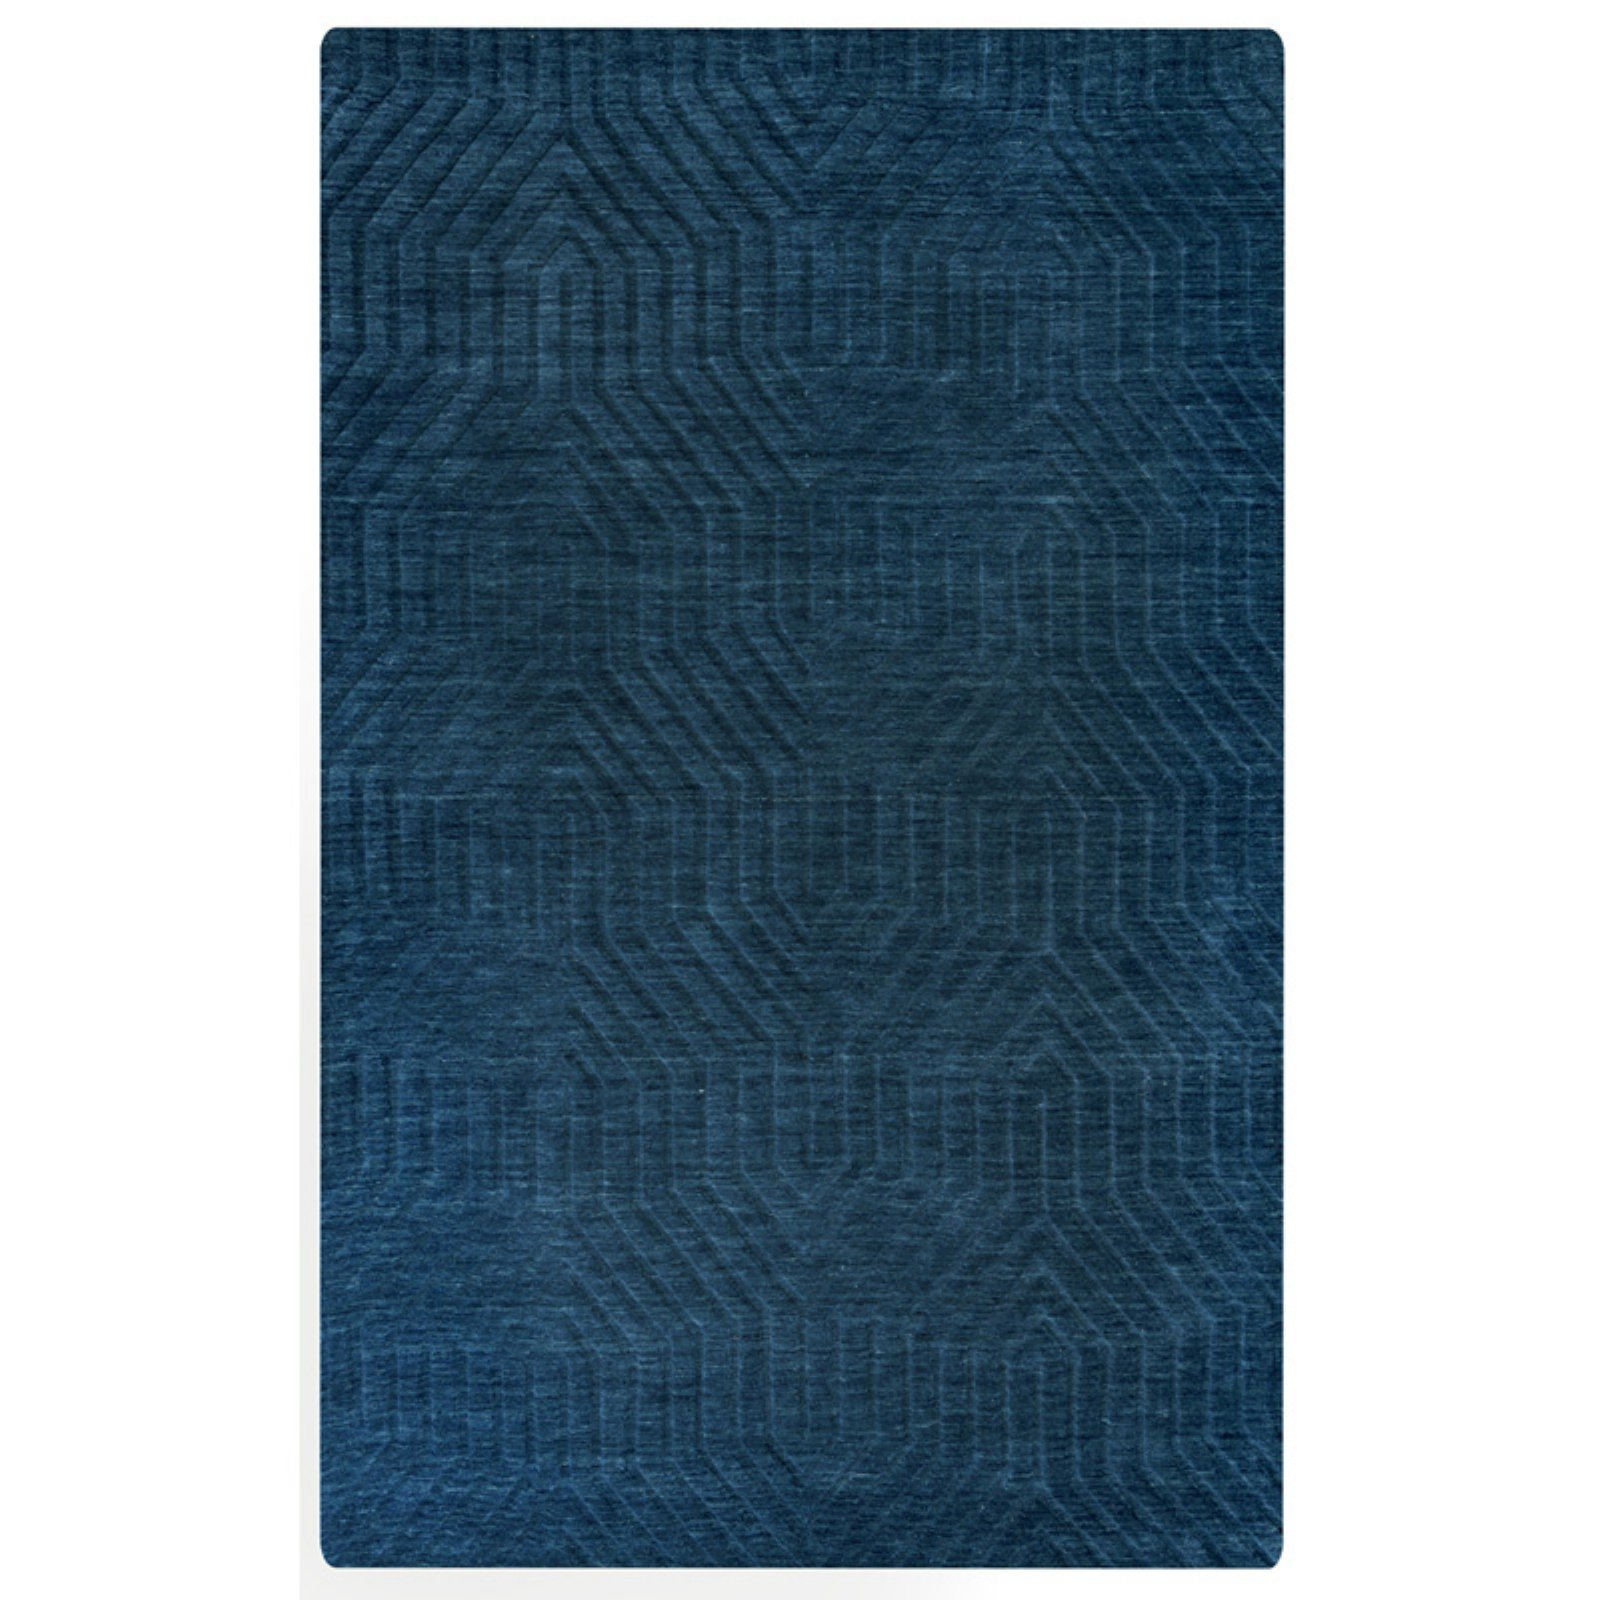 Rizzy Home Technique TC8576 Rug - (5 Foot x 8 Foot)